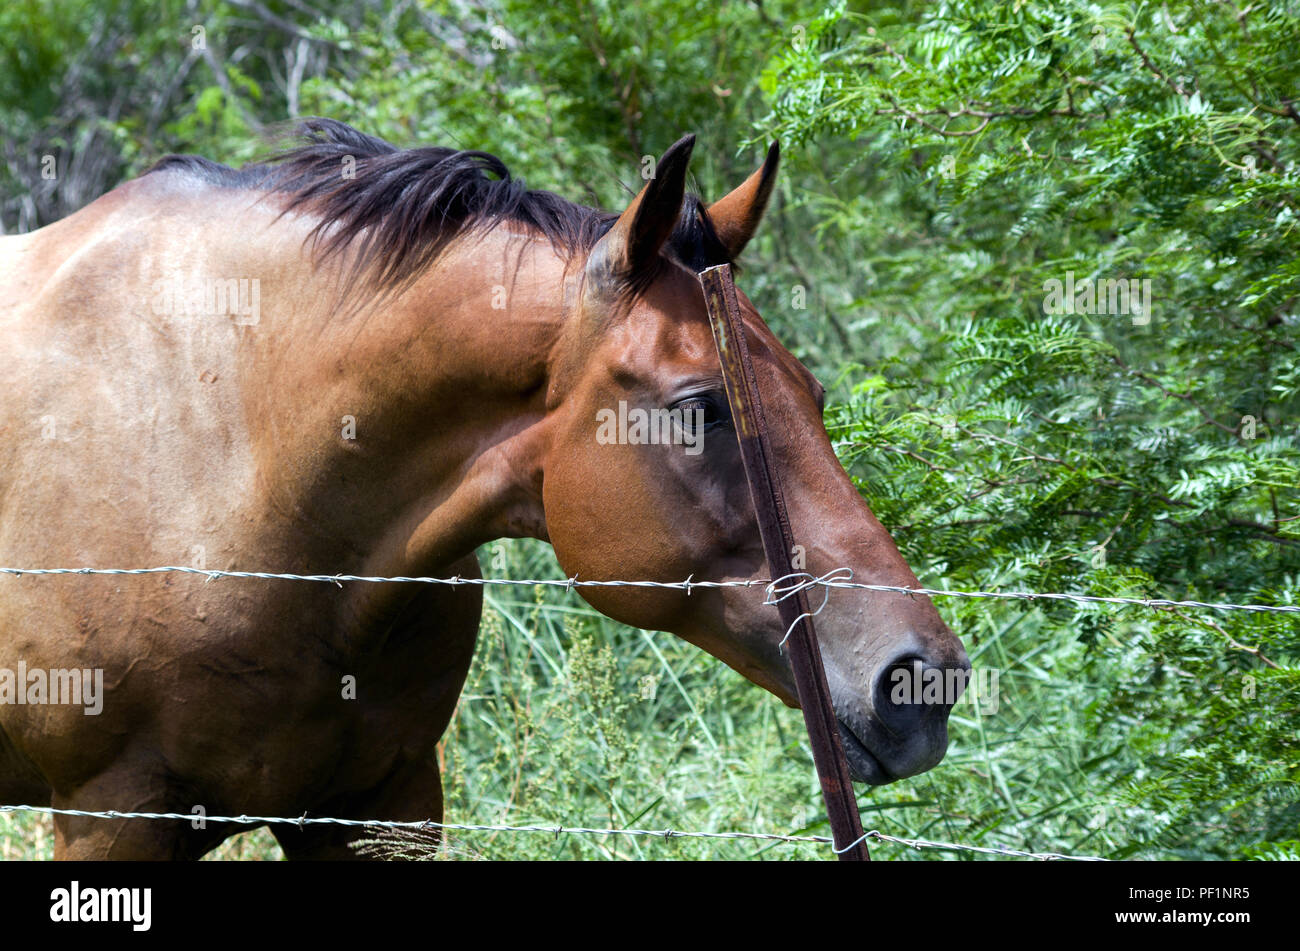 A Bay Horse with an inquisitive posture behind barbed wire fencing.Photographed on an undeveloped lot in suburban Corpus Christi, Texas USA. - Stock Image